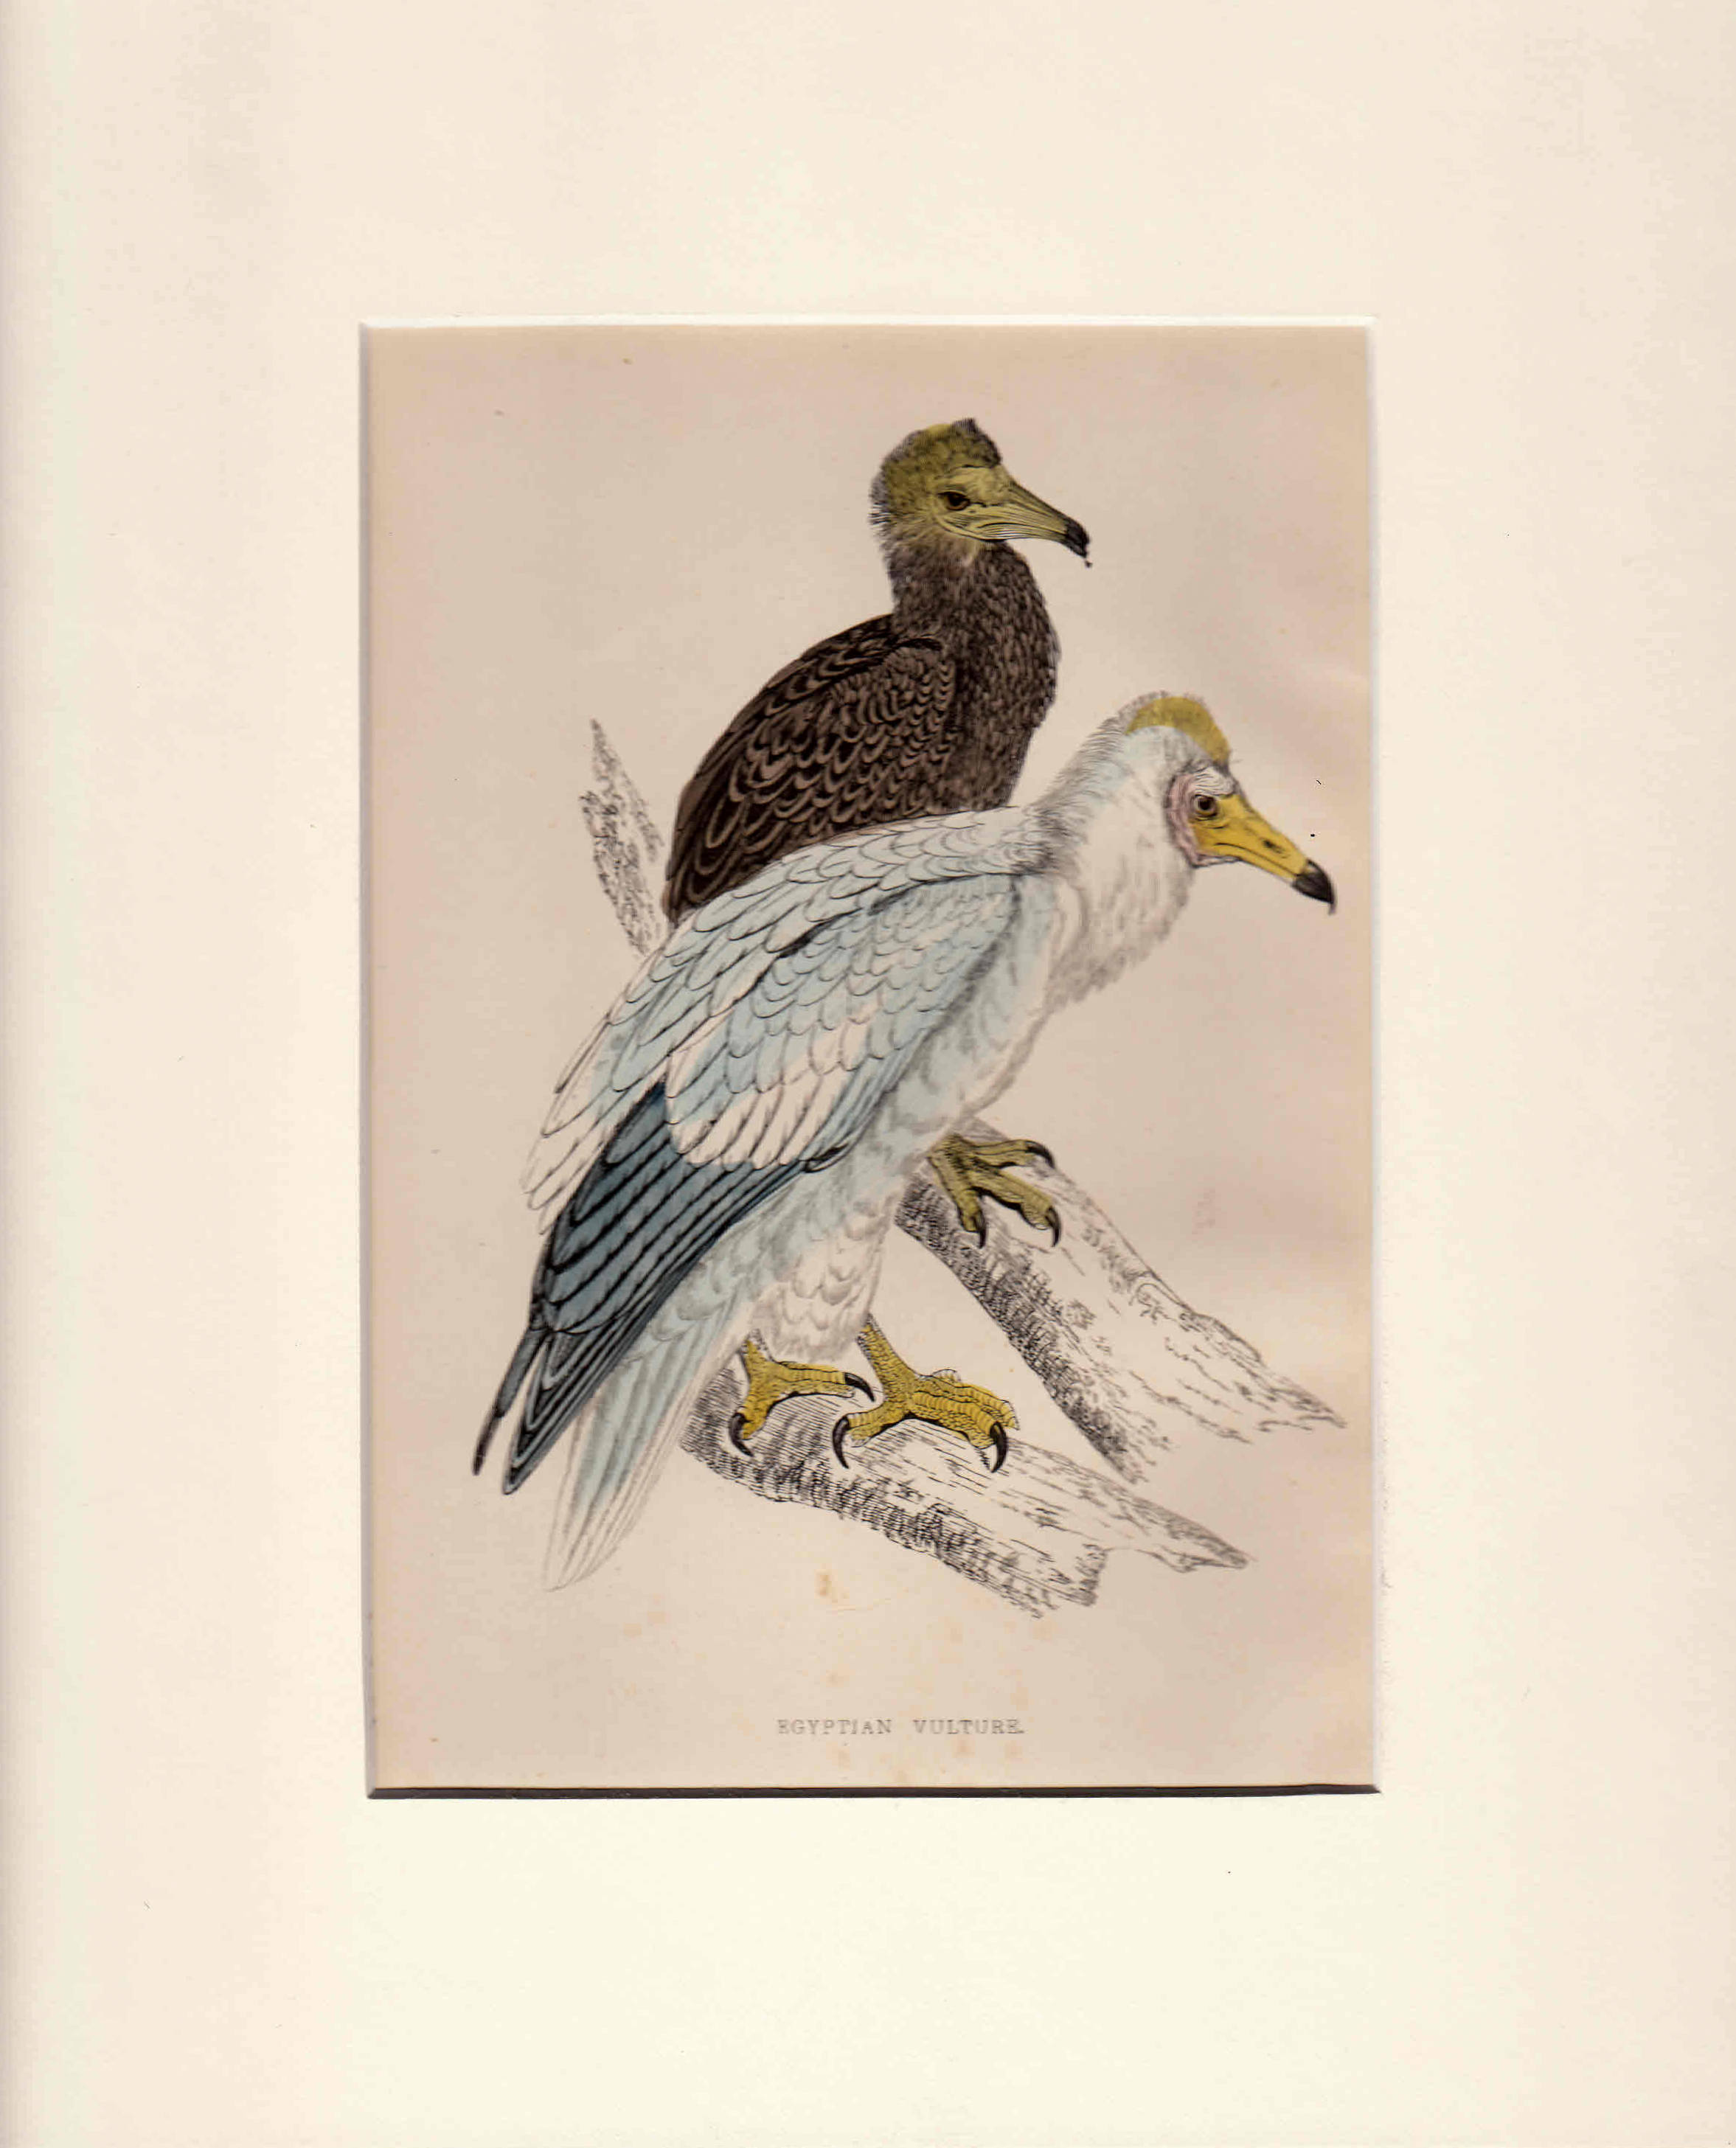 Egyptian Vulture. British Birds.